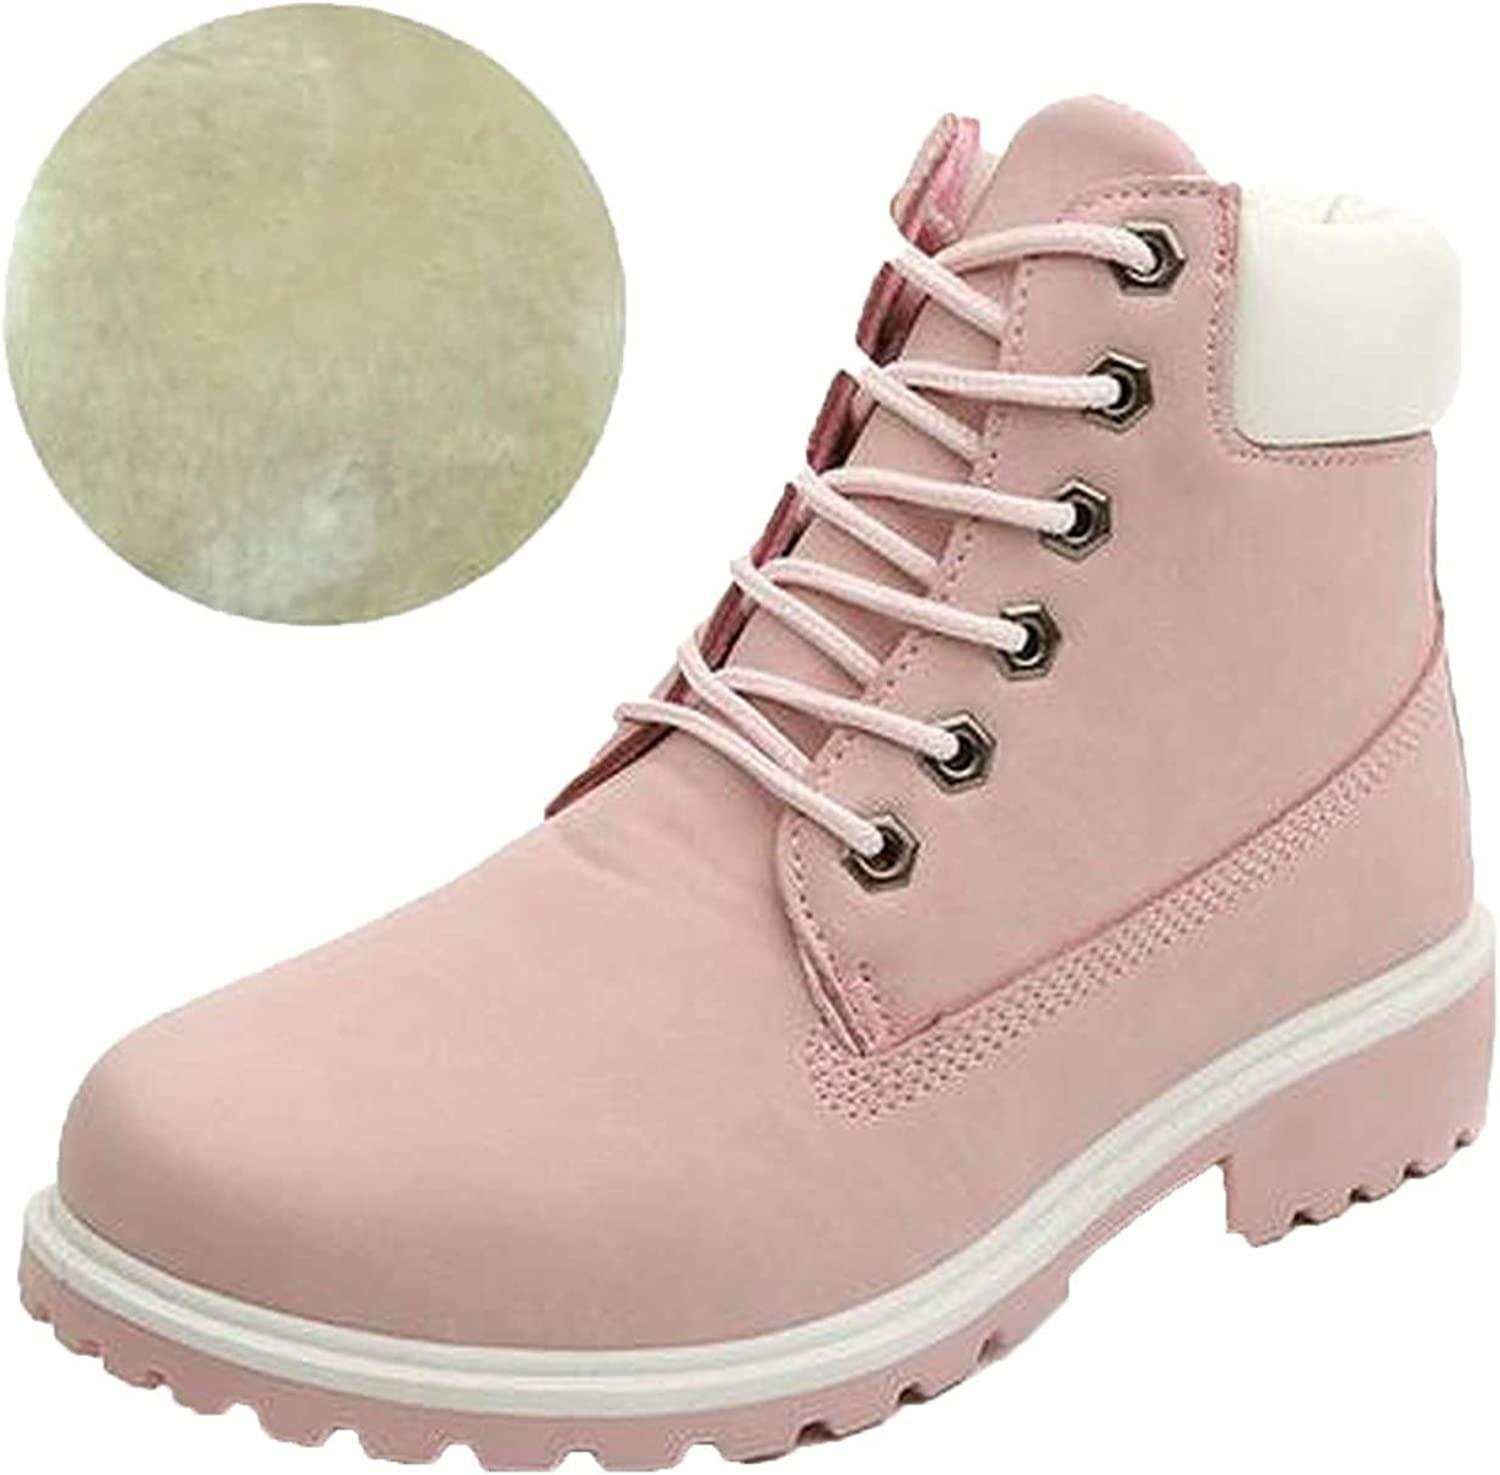 Boots for Round Toe shoes Woman Snow Boots Martin Boots